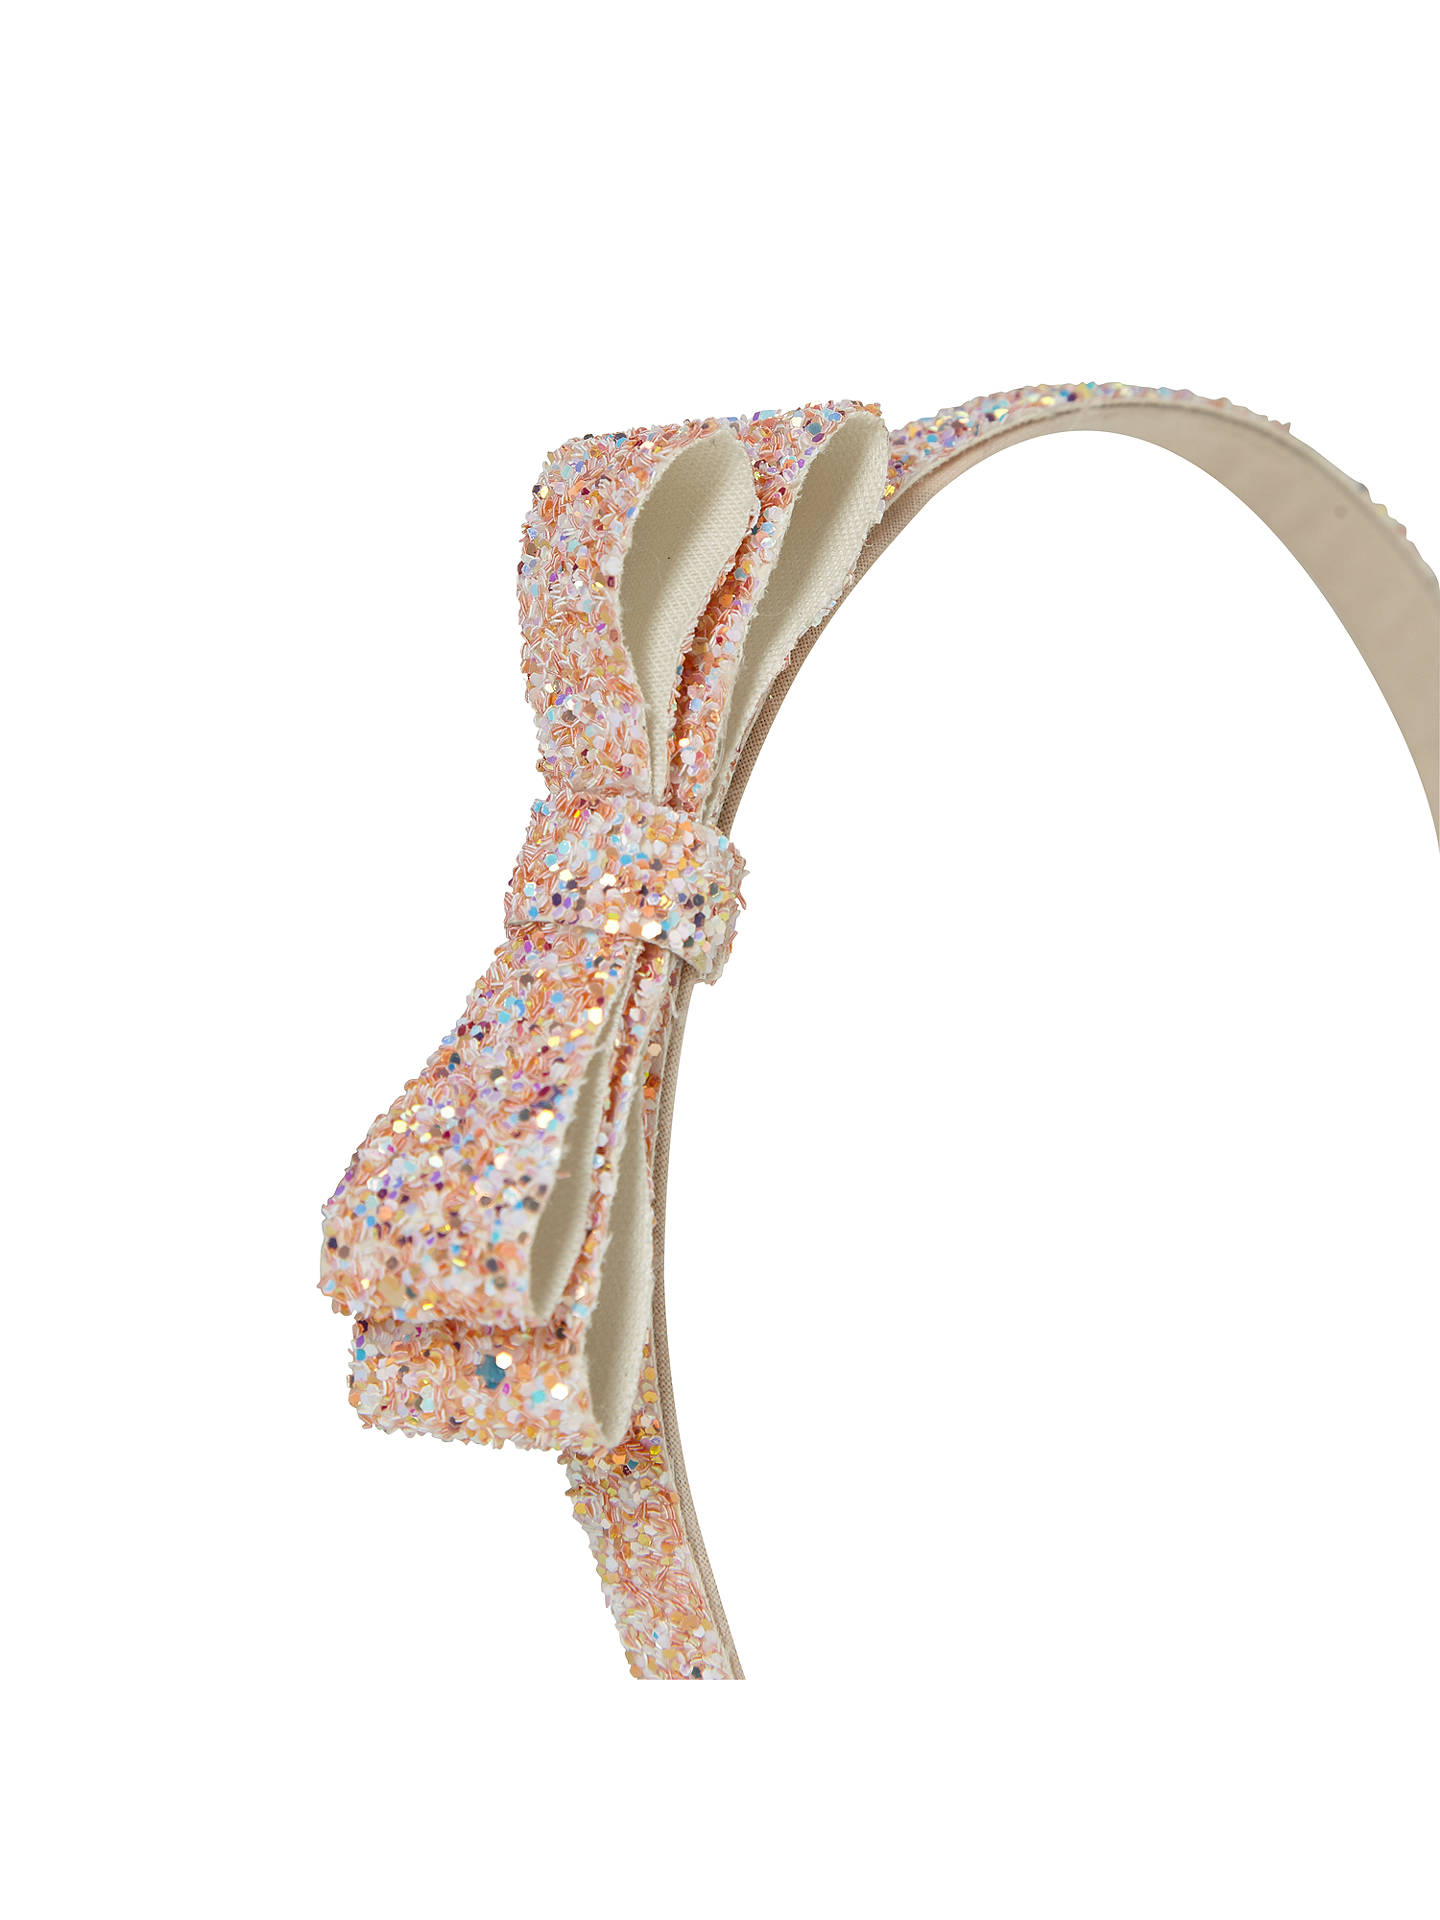 BuyJohn Lewis & Partners Girls' Glitter Bow Alice Band, Pink Online at johnlewis.com